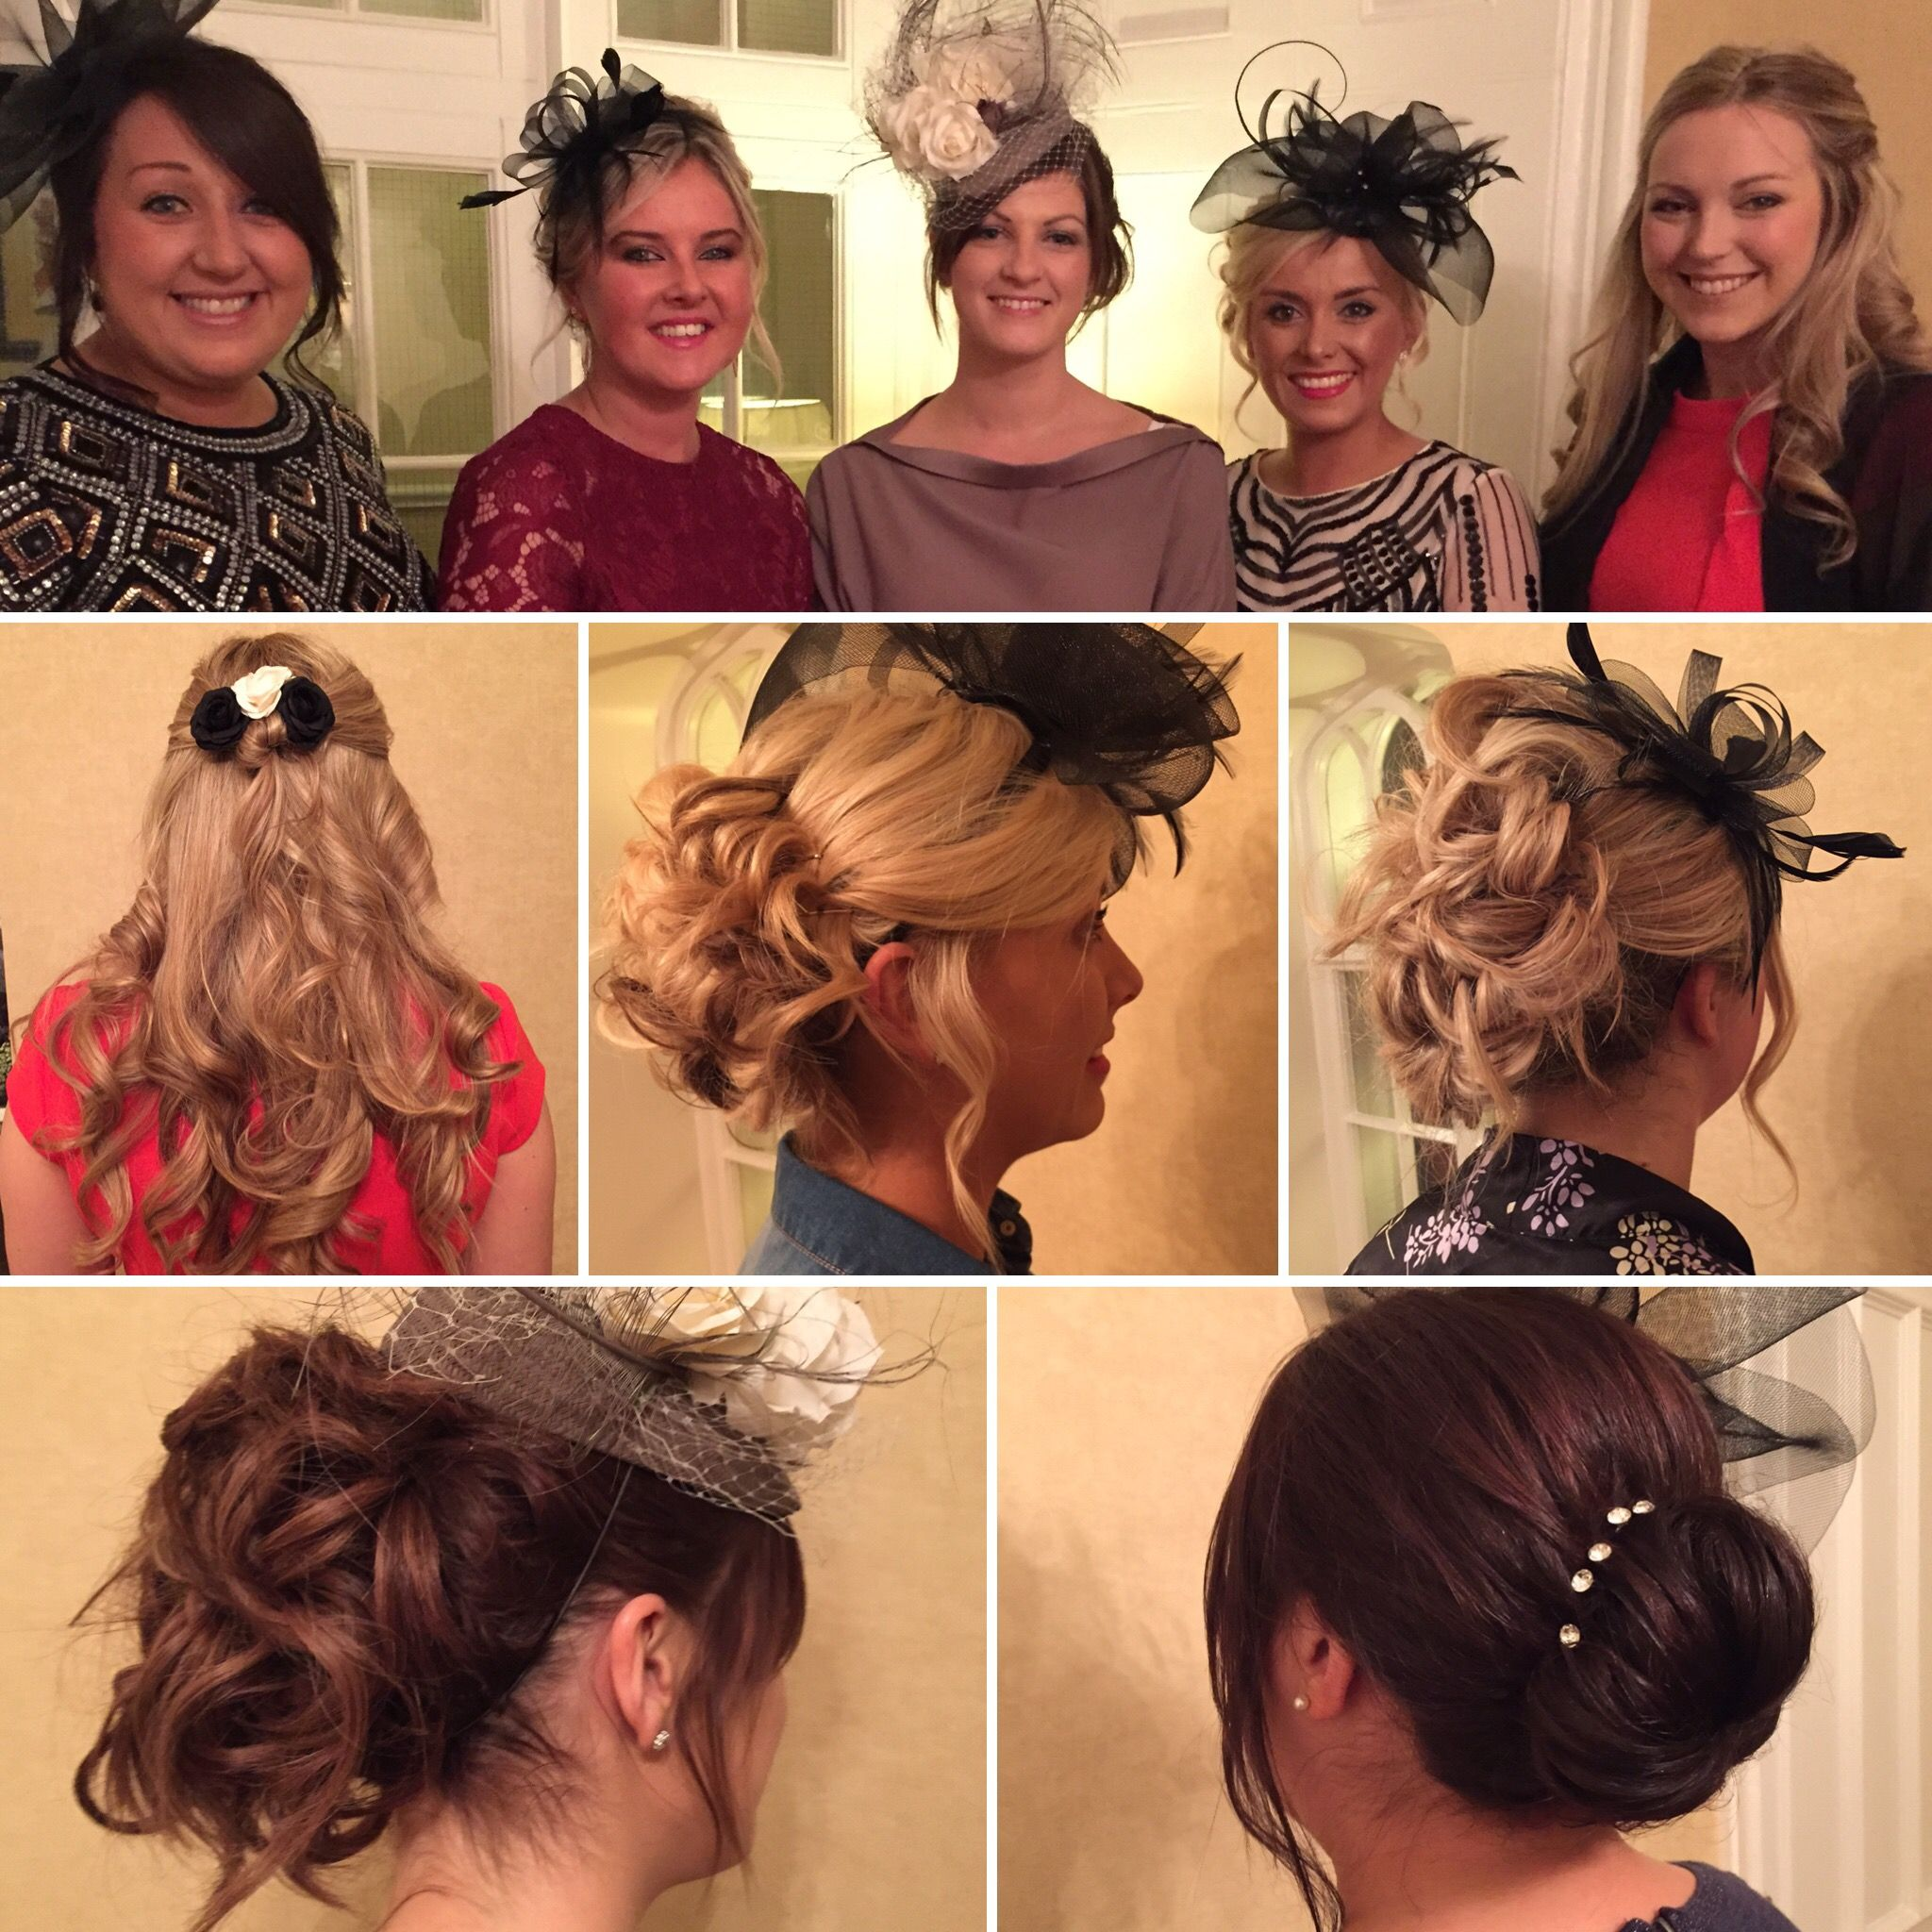 Wedding Guest Hairstyles For Long Hair With Fascinator | Fade Haircut